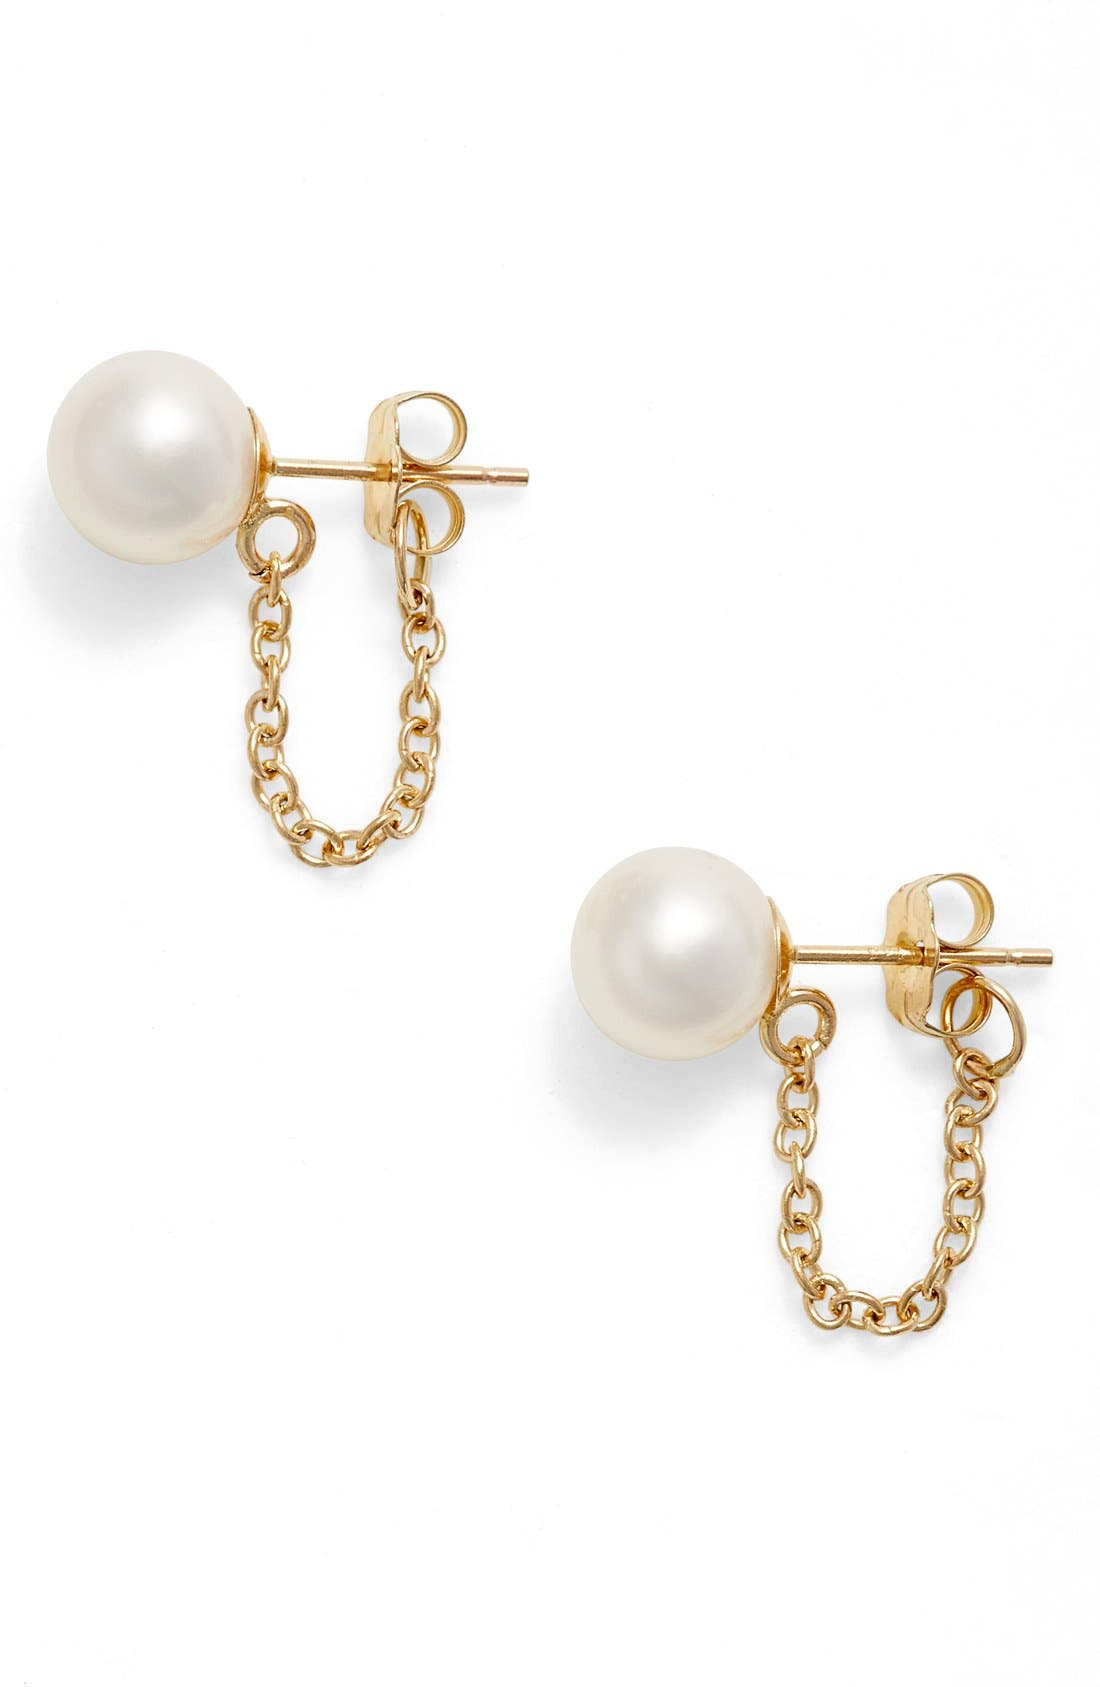 Pearl Ear Chains,                         Main,                         color, Yellow Gold/ White Pearl